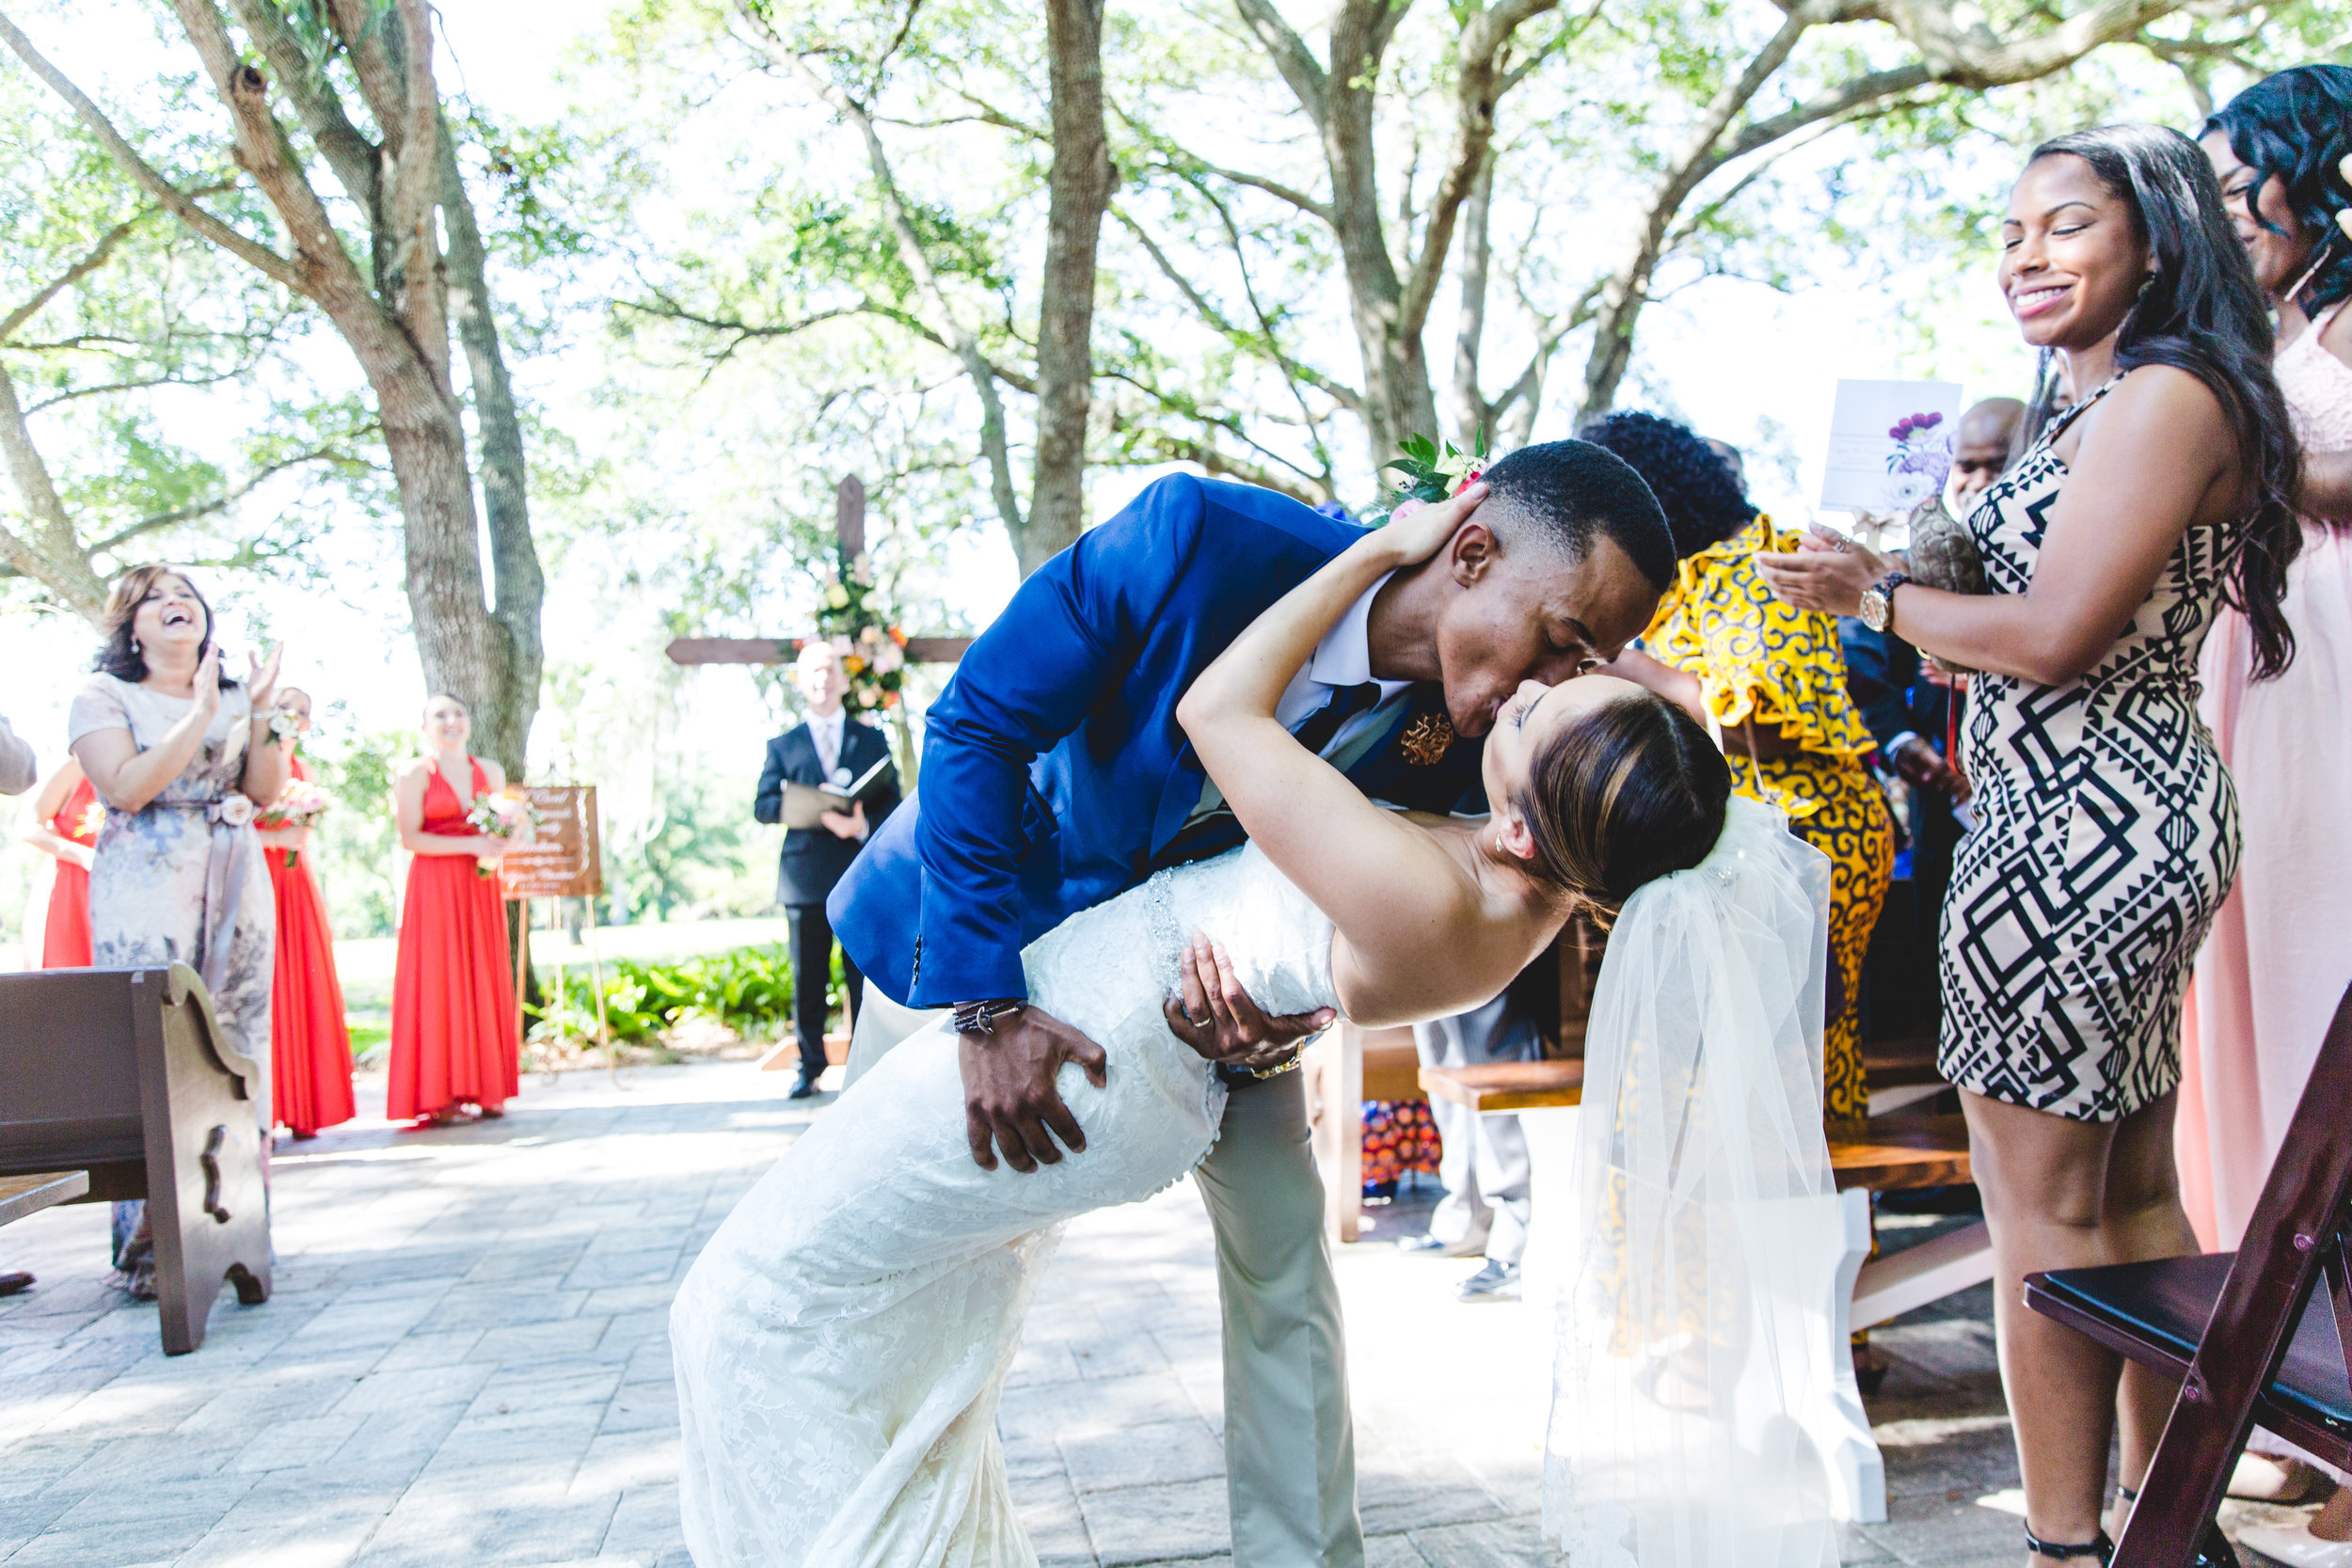 A wedding, engagement, love, newlywed image of a bride in her wedding dress kissing her husband -taken by Miami Wedding Photographer, Javier Edwards of El Roi Photo, in Miami, Florida, for a Miami Wedding